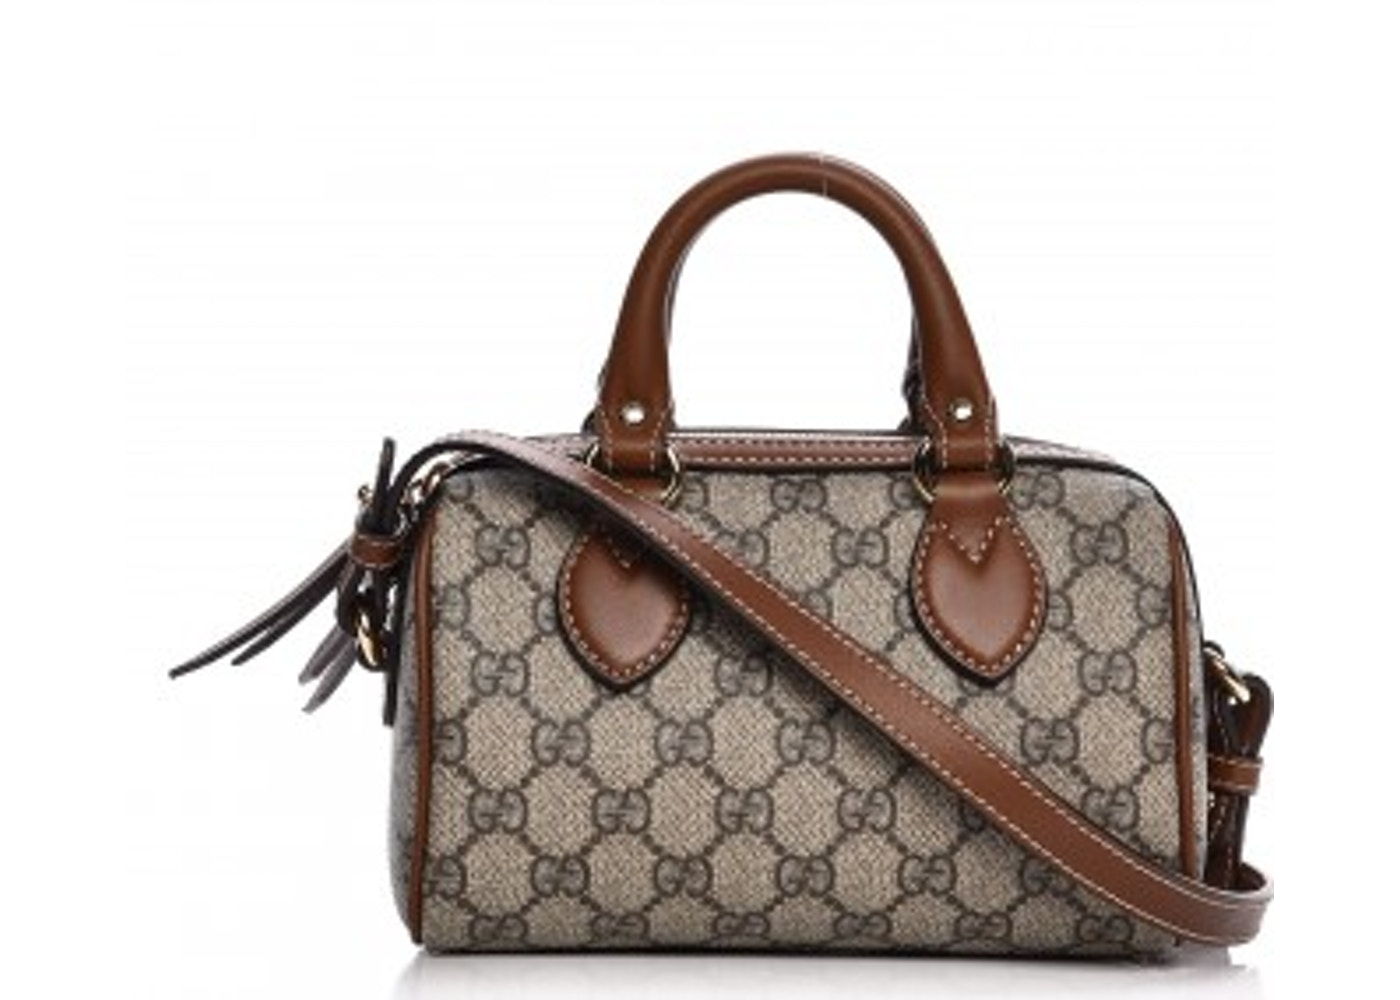 d3166477a14029 Gucci Boston Bag Top Handle GG Supreme Monogram Mini Brown ...